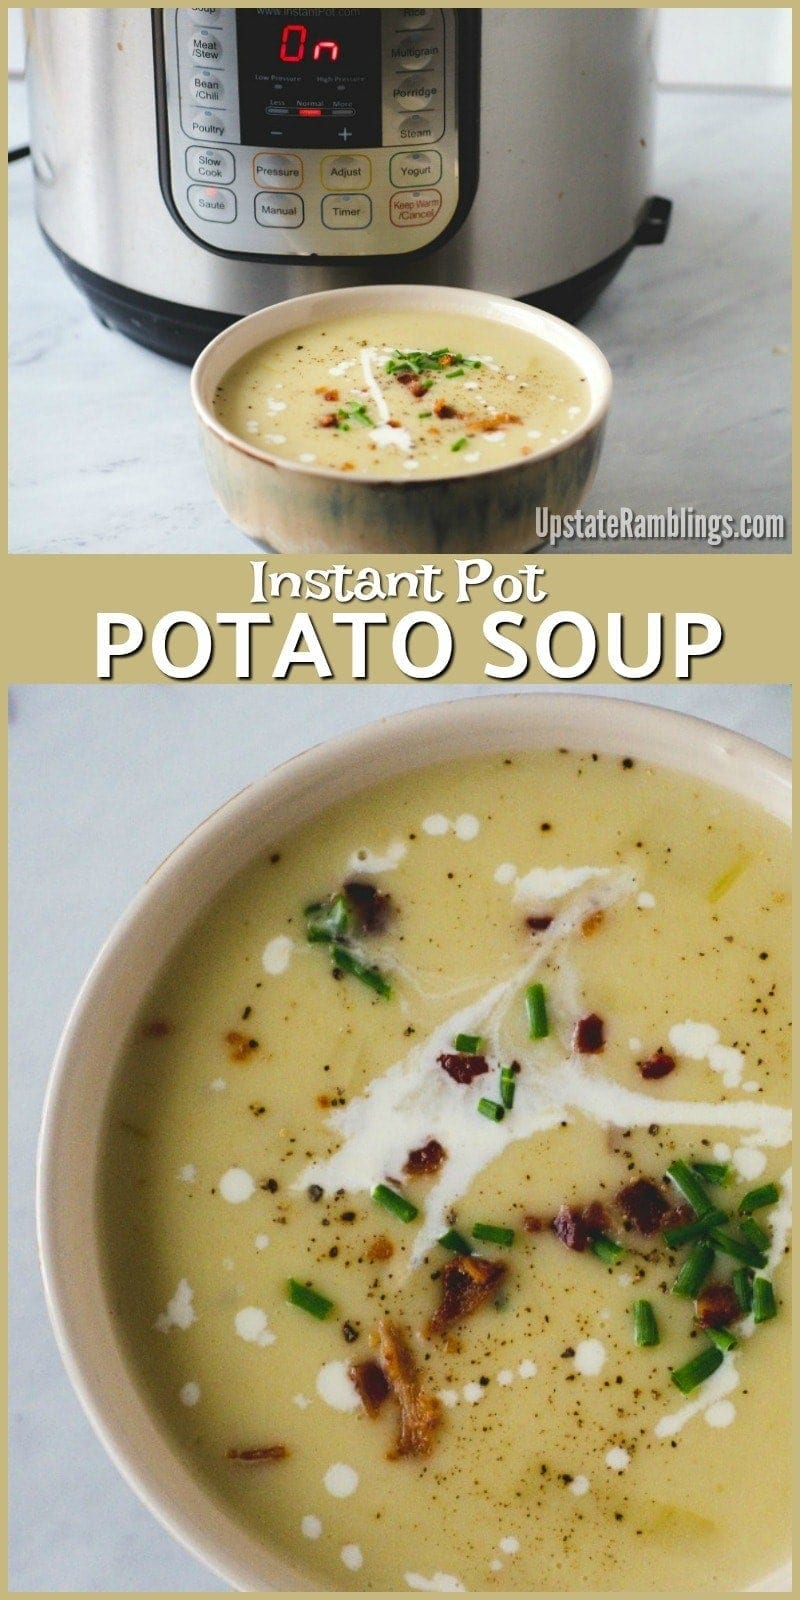 This recipe for Instant Pot Potato Soup is creamy and delicious, yet it is quick and easy to make. The pressure cooker soup is a creamy combination of potatoes and vegetables, topped off with all your favorite baked potato toppings - sour cream, bacon, cheese and more. Potato soup is a great comfort food for a cold and blustery winter day! #instantpot #pressurecooker #potatosoup